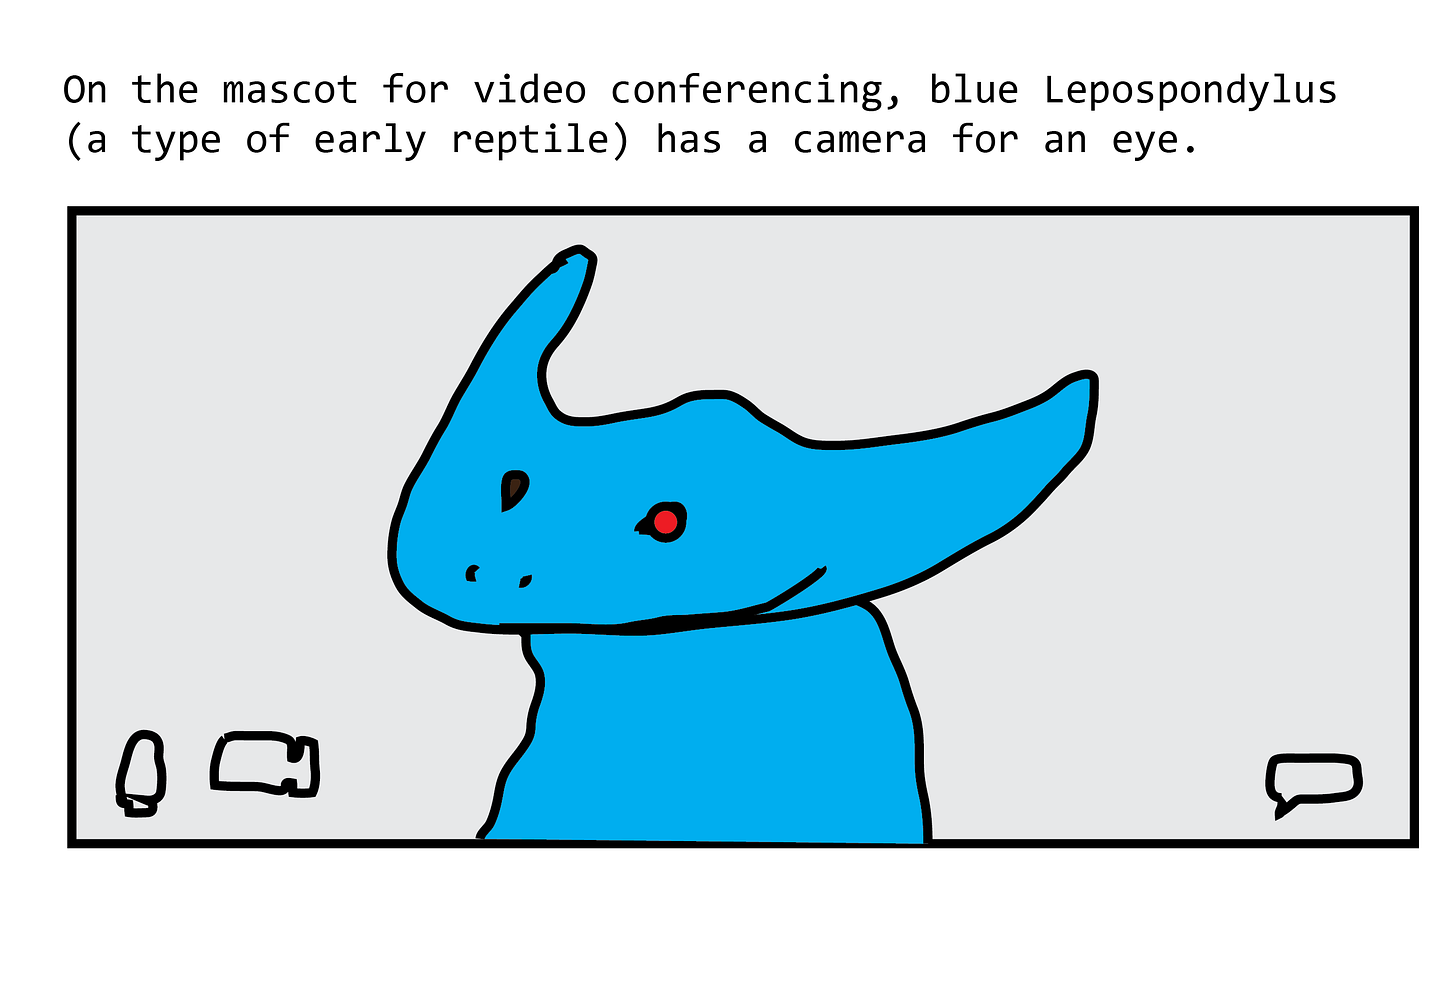 The mascot is a blue diplocaulus, an early amphibian with a huge boomerang-shaped head. It is making a zoom call.